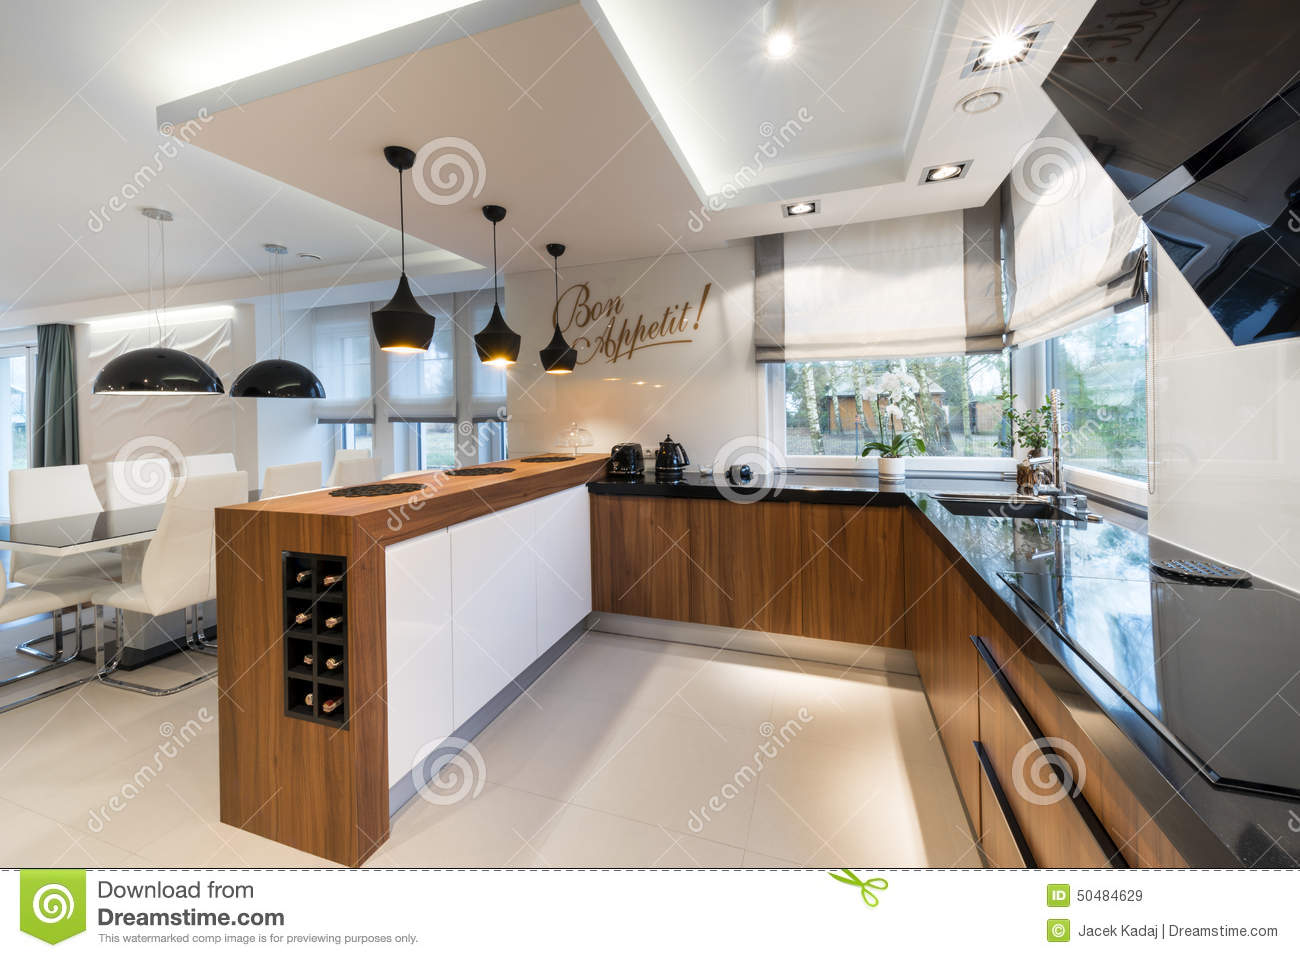 Modern kitchen interior design stock image image of furniture mansion 50484629 Modern houses interior kitchen